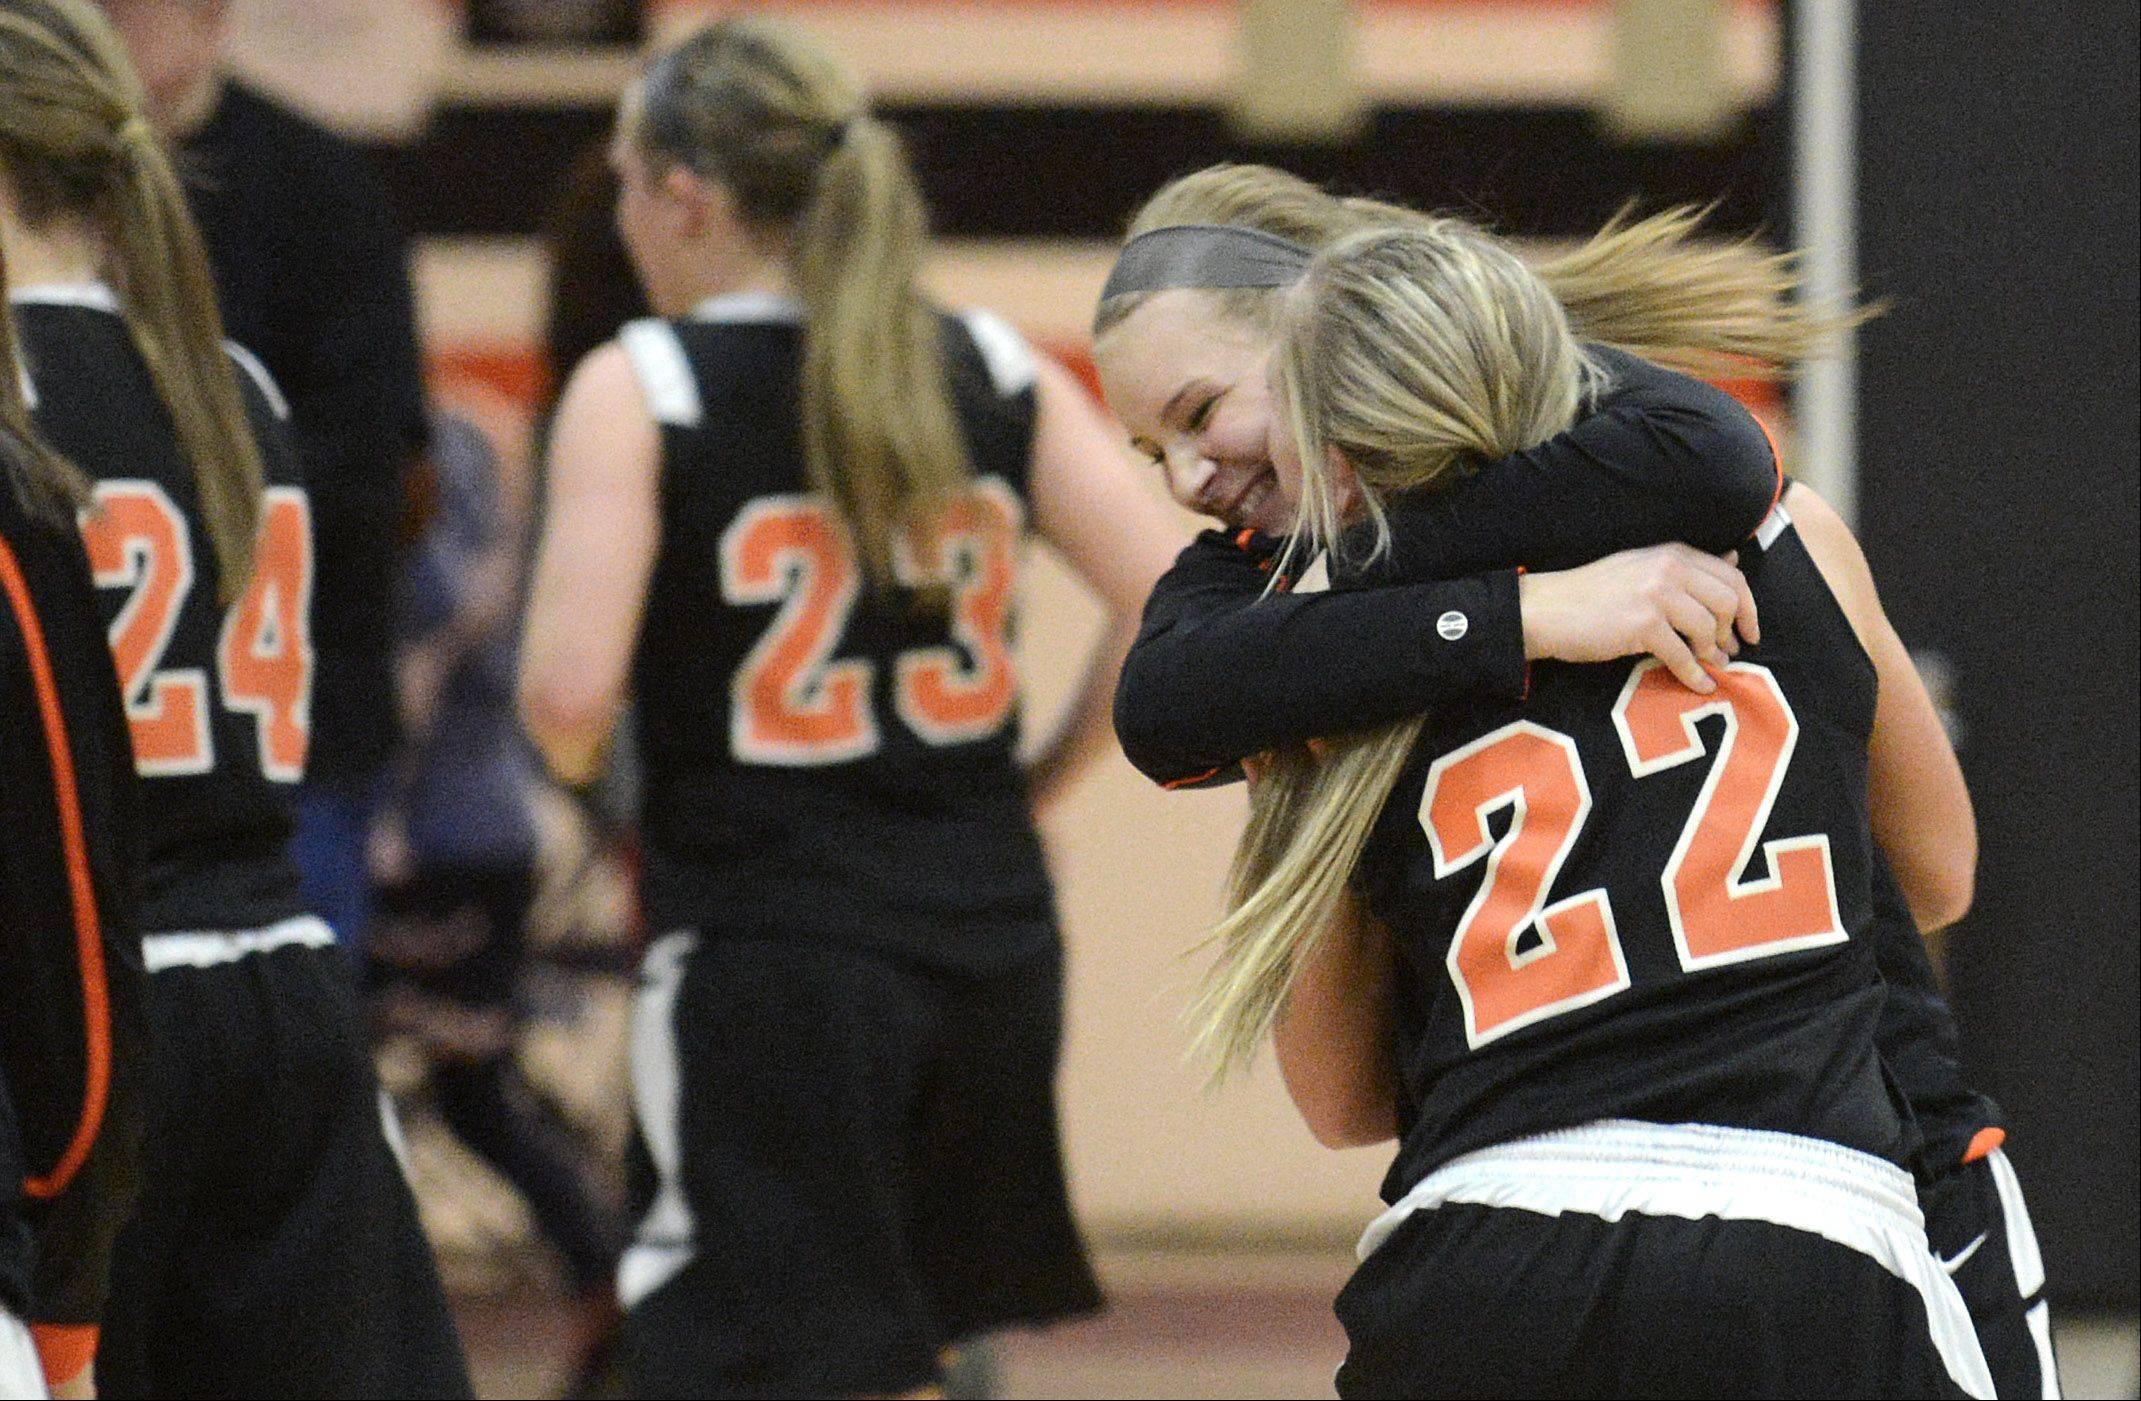 St. Charles East's Marlena Detzel , facing, embraces teammate Anna Bartels after their win.